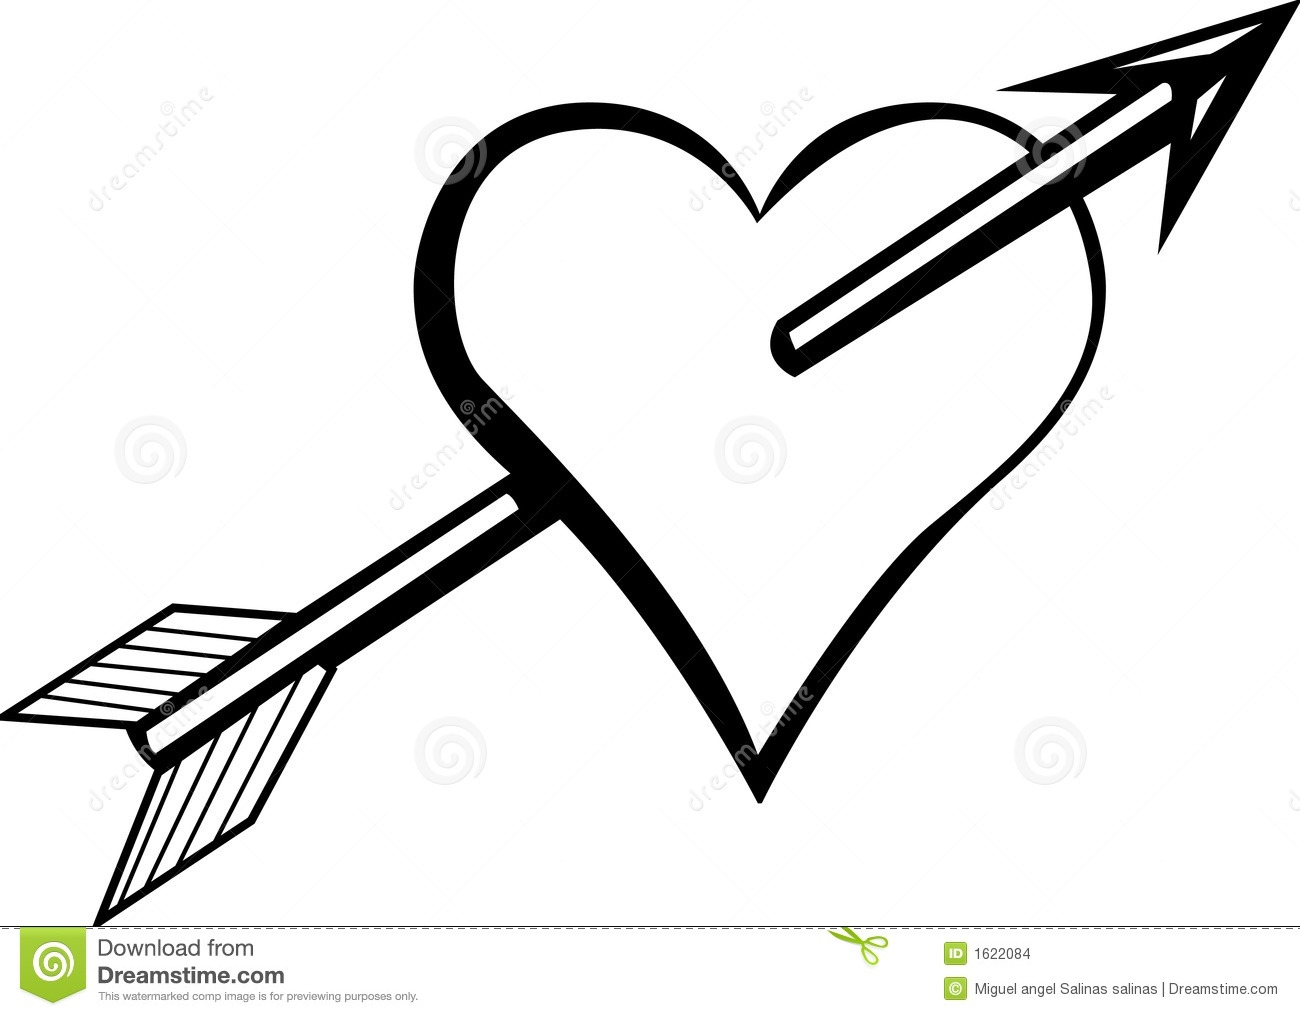 arrow heart clipart black and white for silhouette